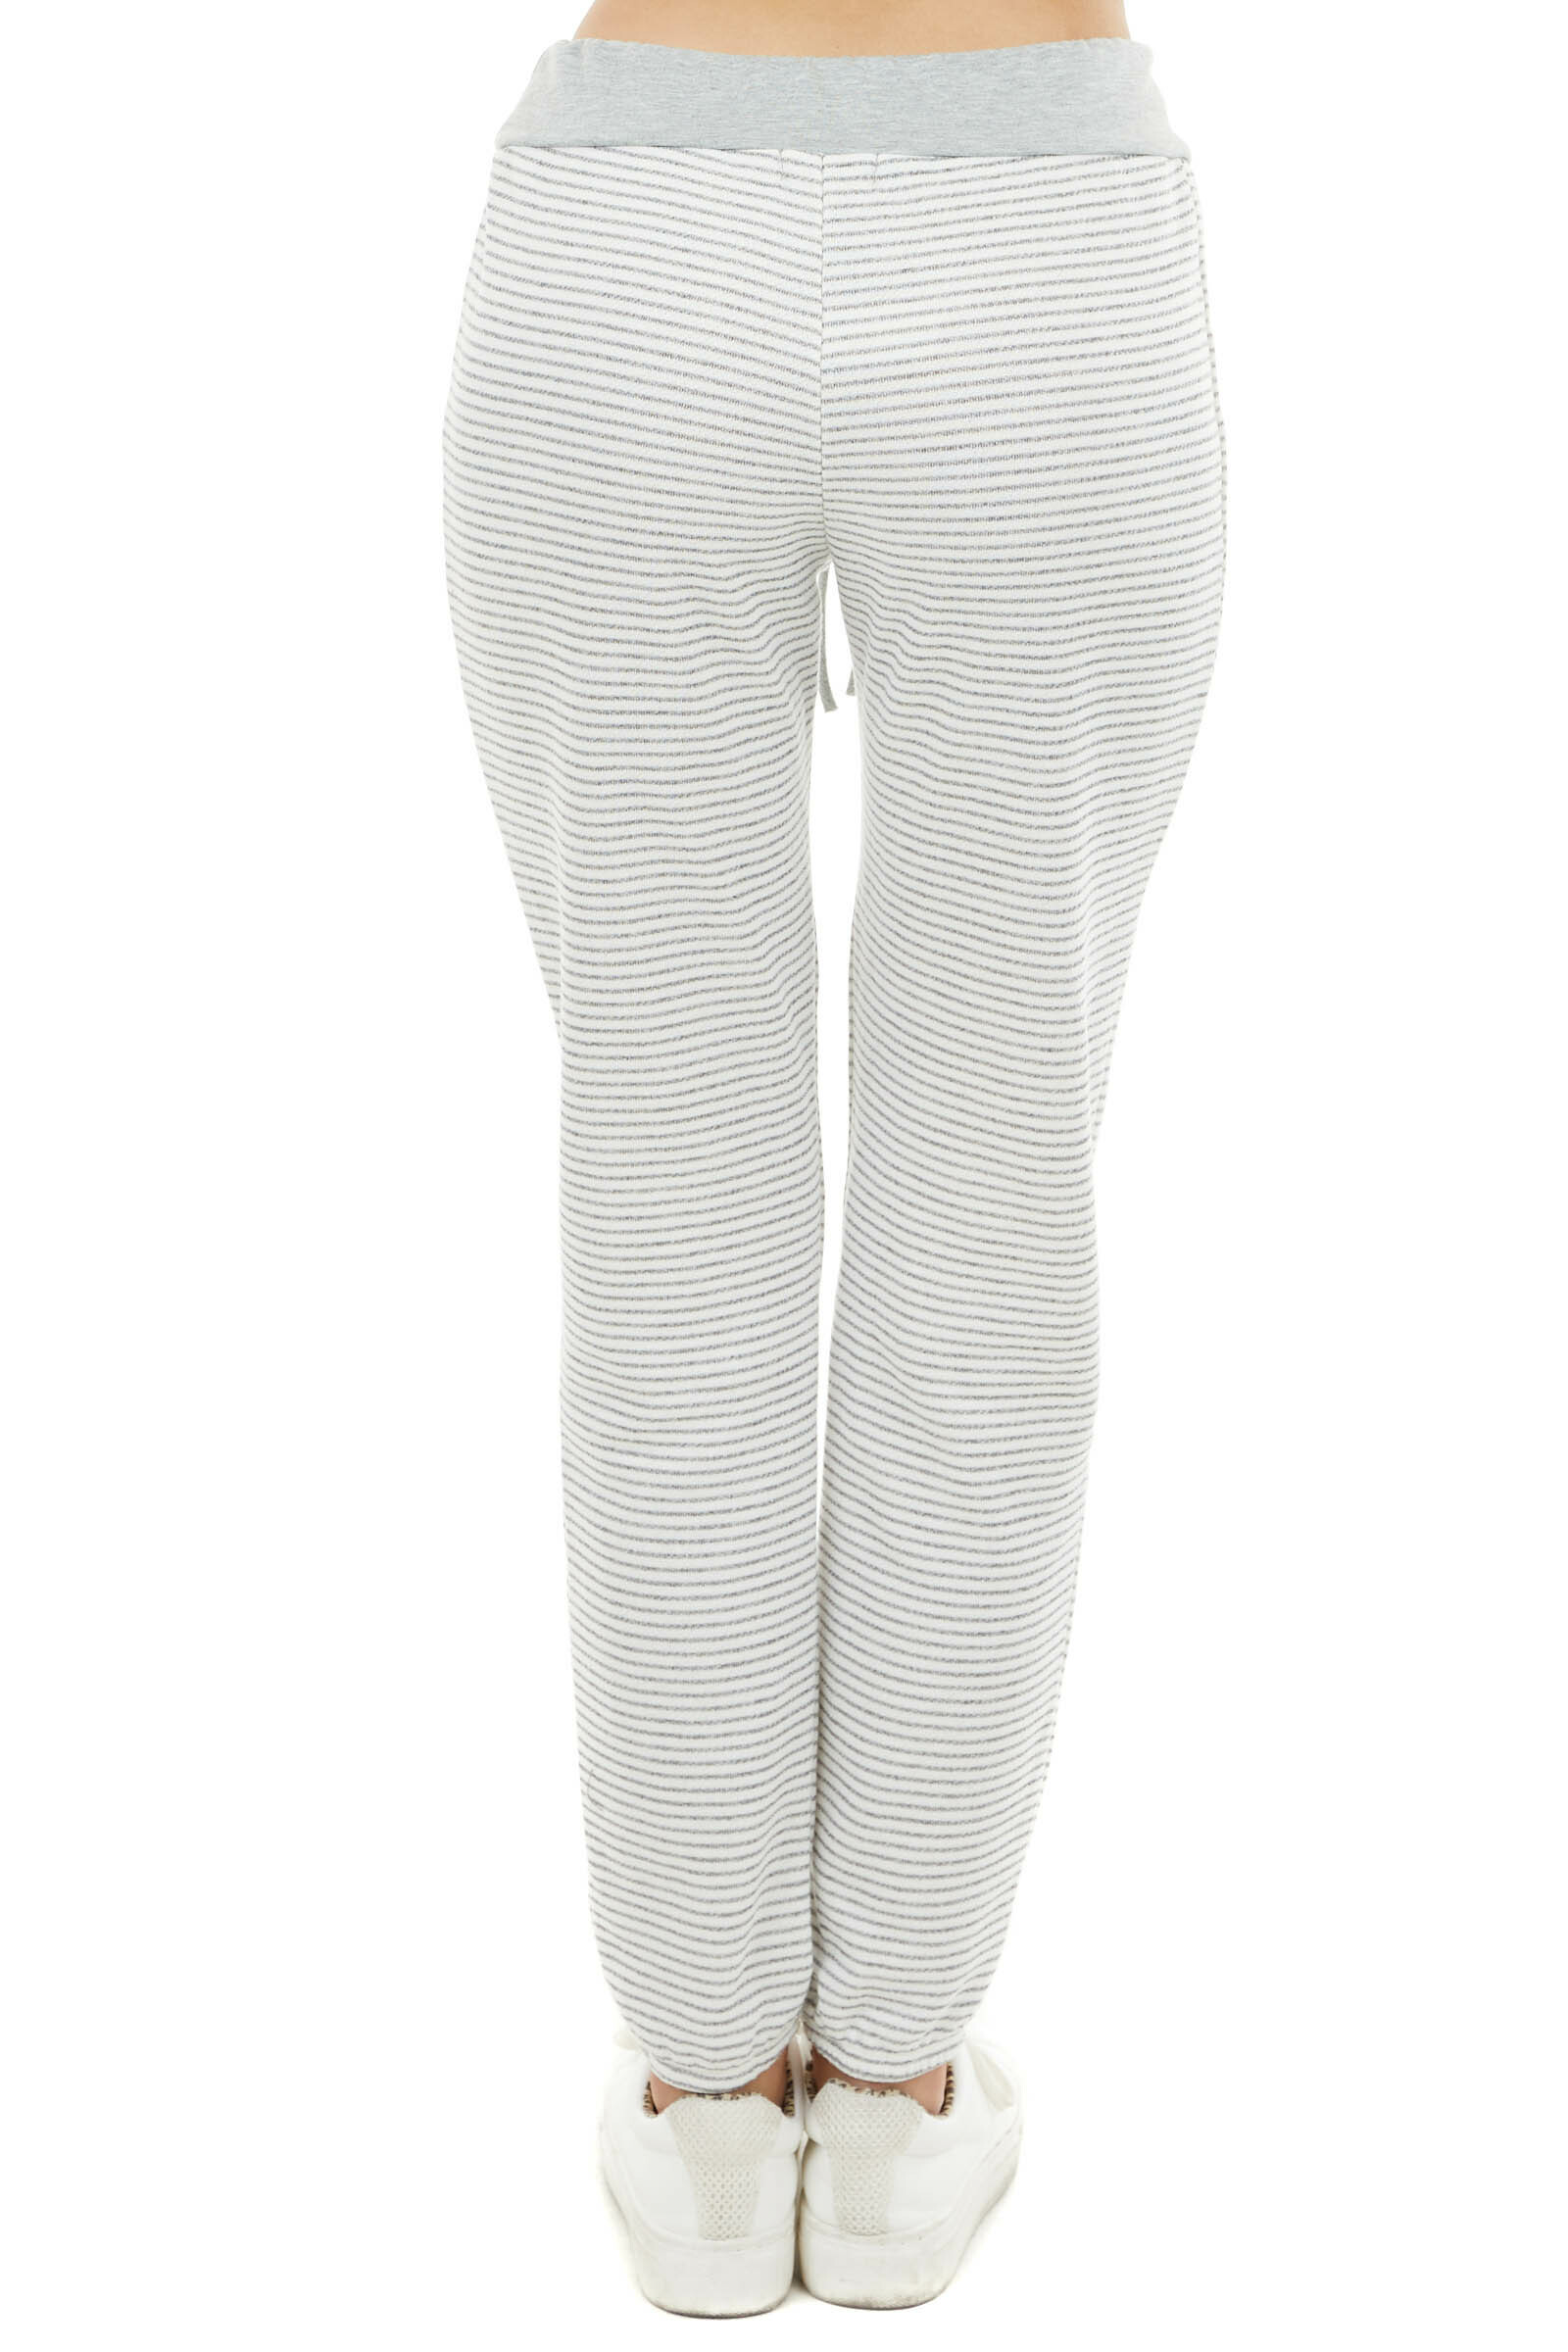 Heather Grey and Ivory Striped Jogger Pants